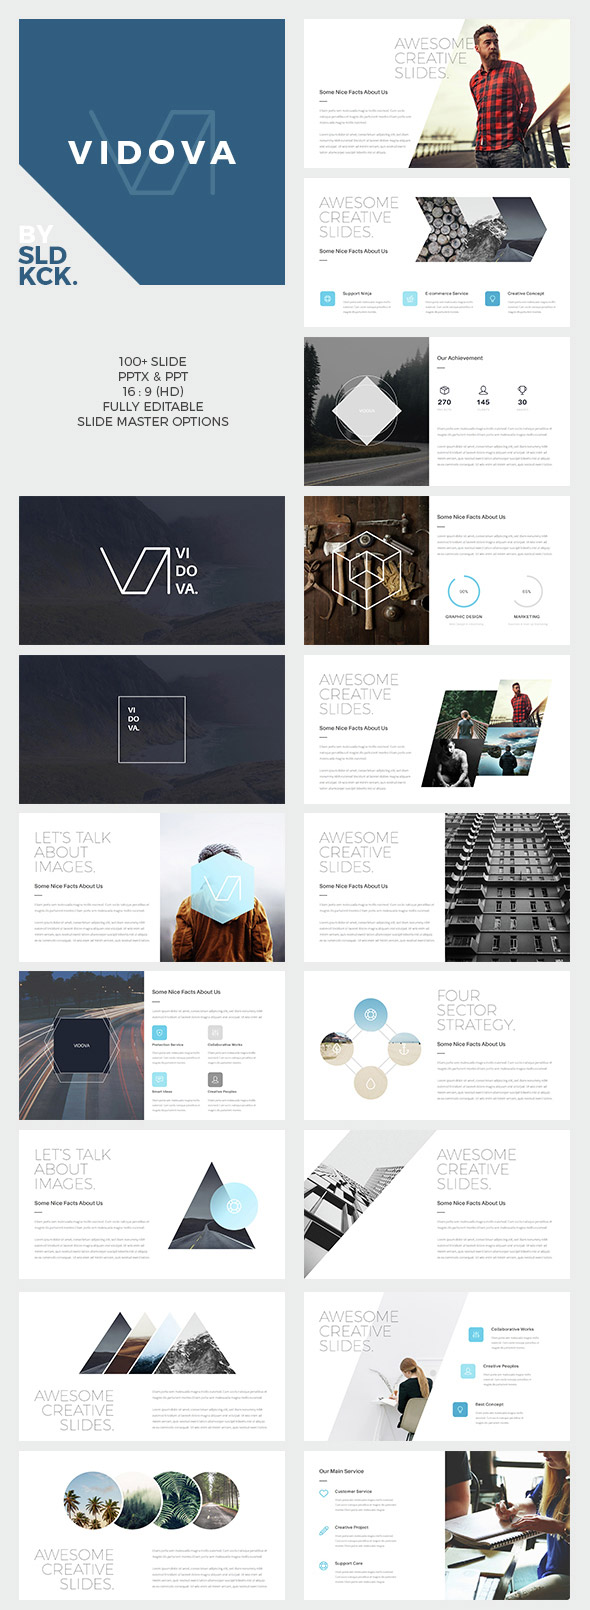 20 ppt templates for simple modern powerpoint presentations vidova modern ppt presentation template design toneelgroepblik Images